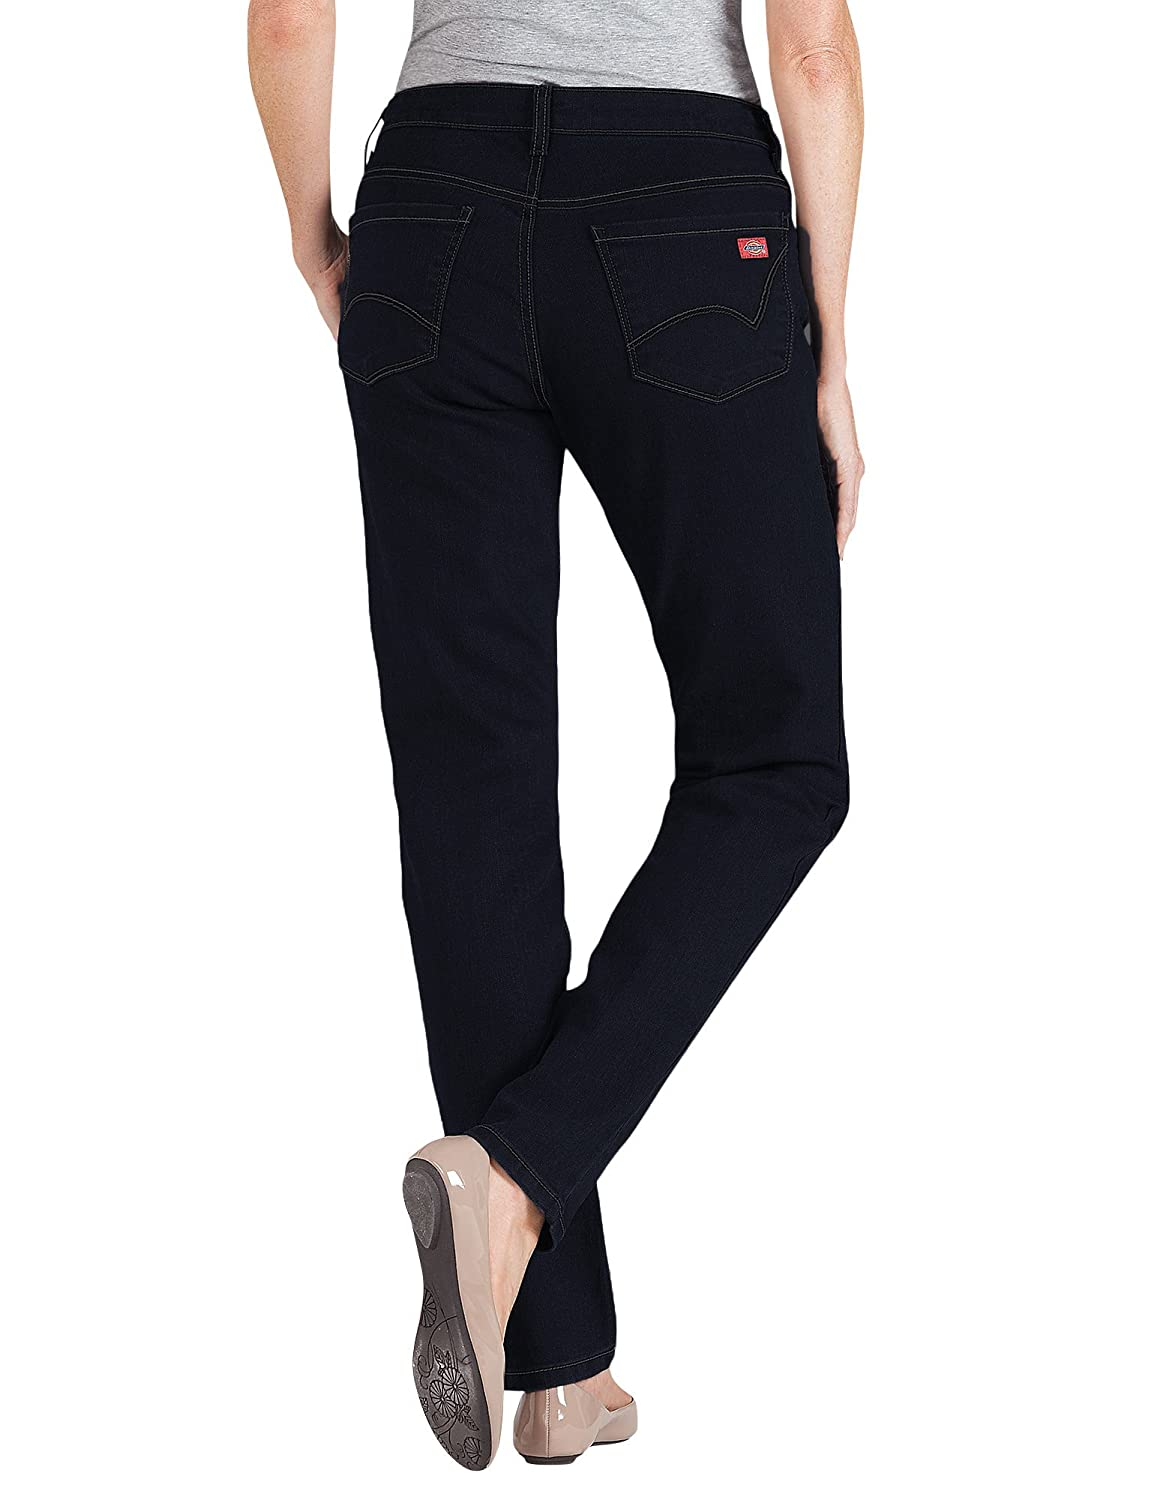 Dickies Womens Dark Stonewash Curvy Fit Stretch Skinny Jean